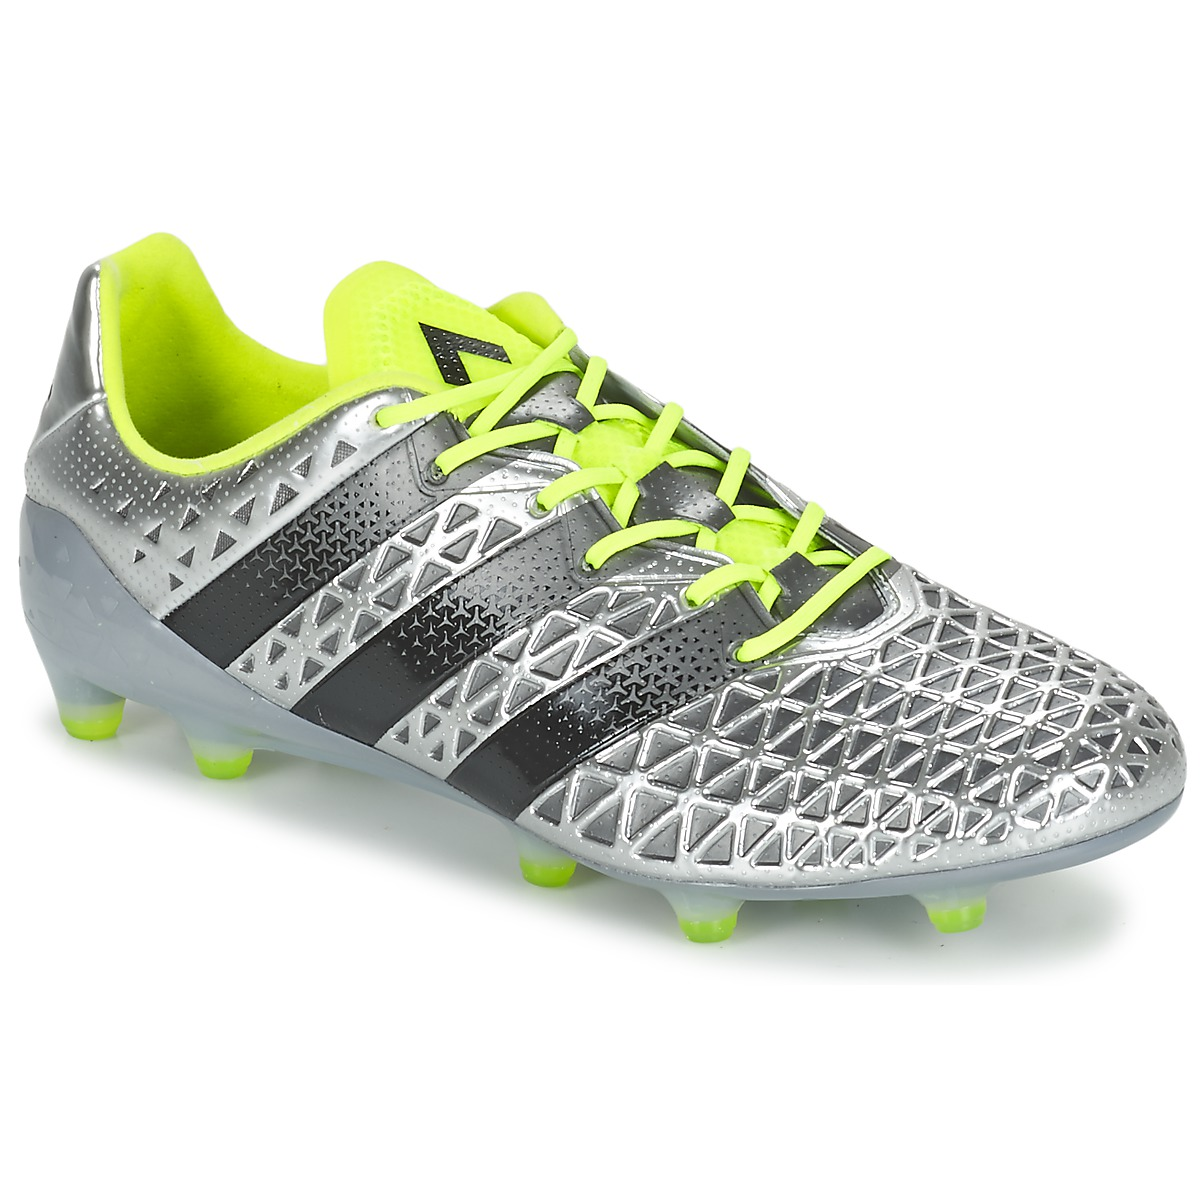 timeless design 7d3a1 9259c adidas Performance ACE 16.1 FG Silver Shoes Football shoes ...